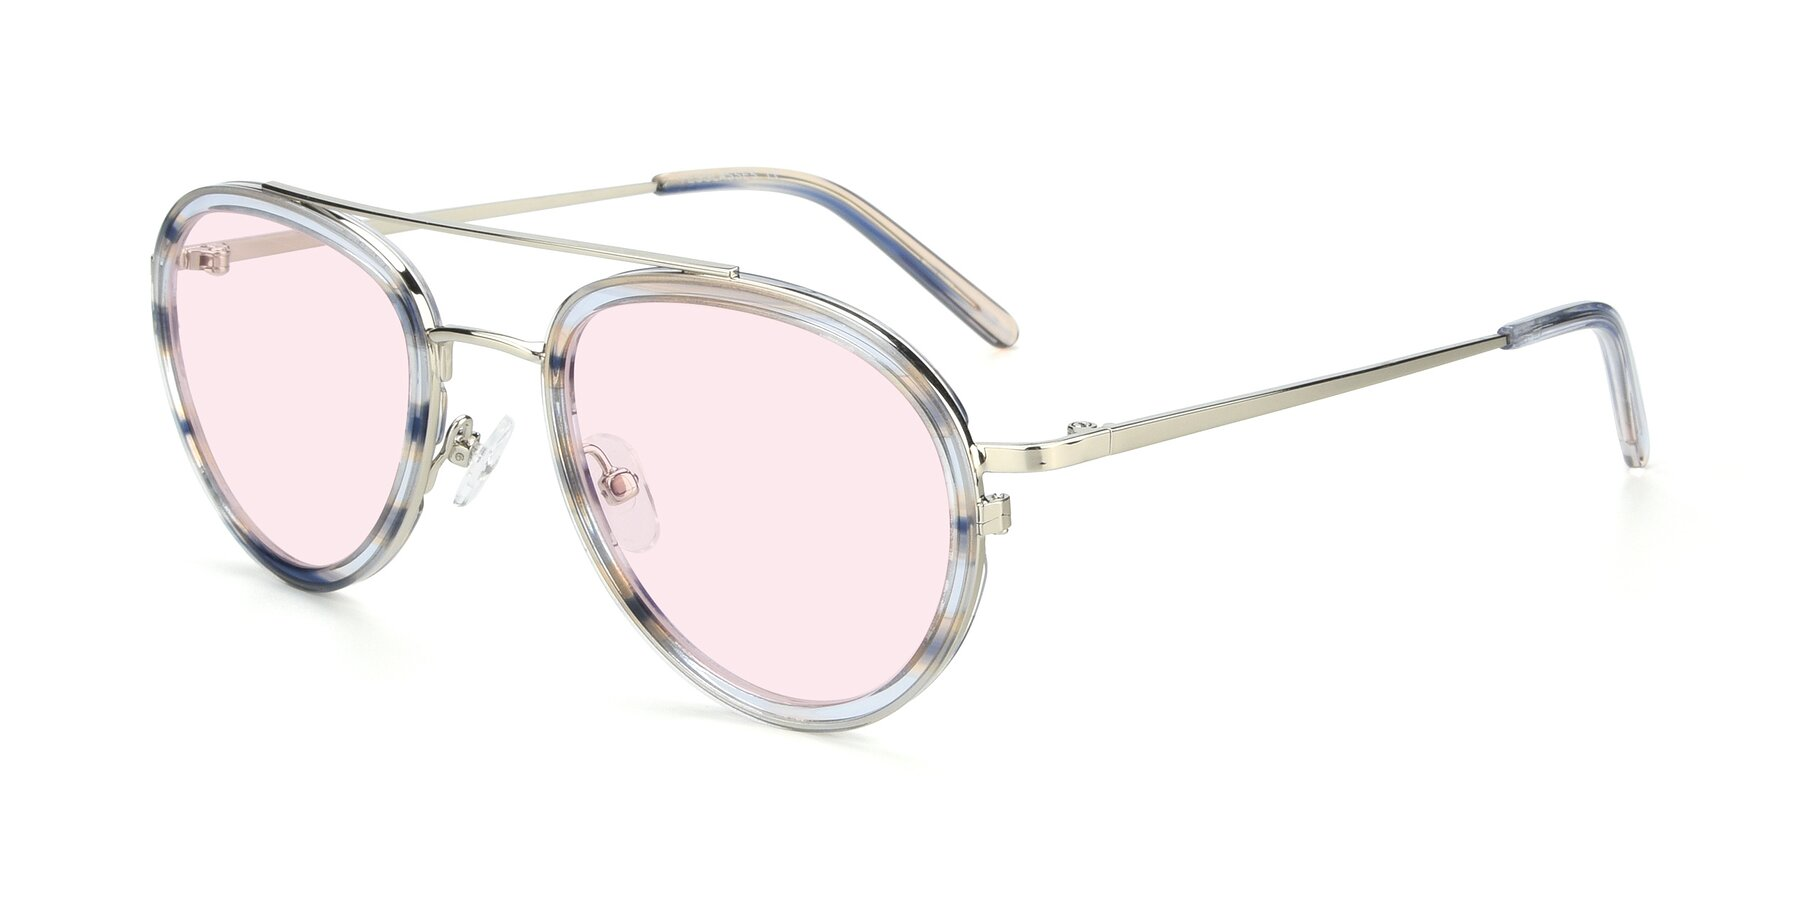 Angle of 9554 in Silver-Transparent with Light Pink Tinted Lenses